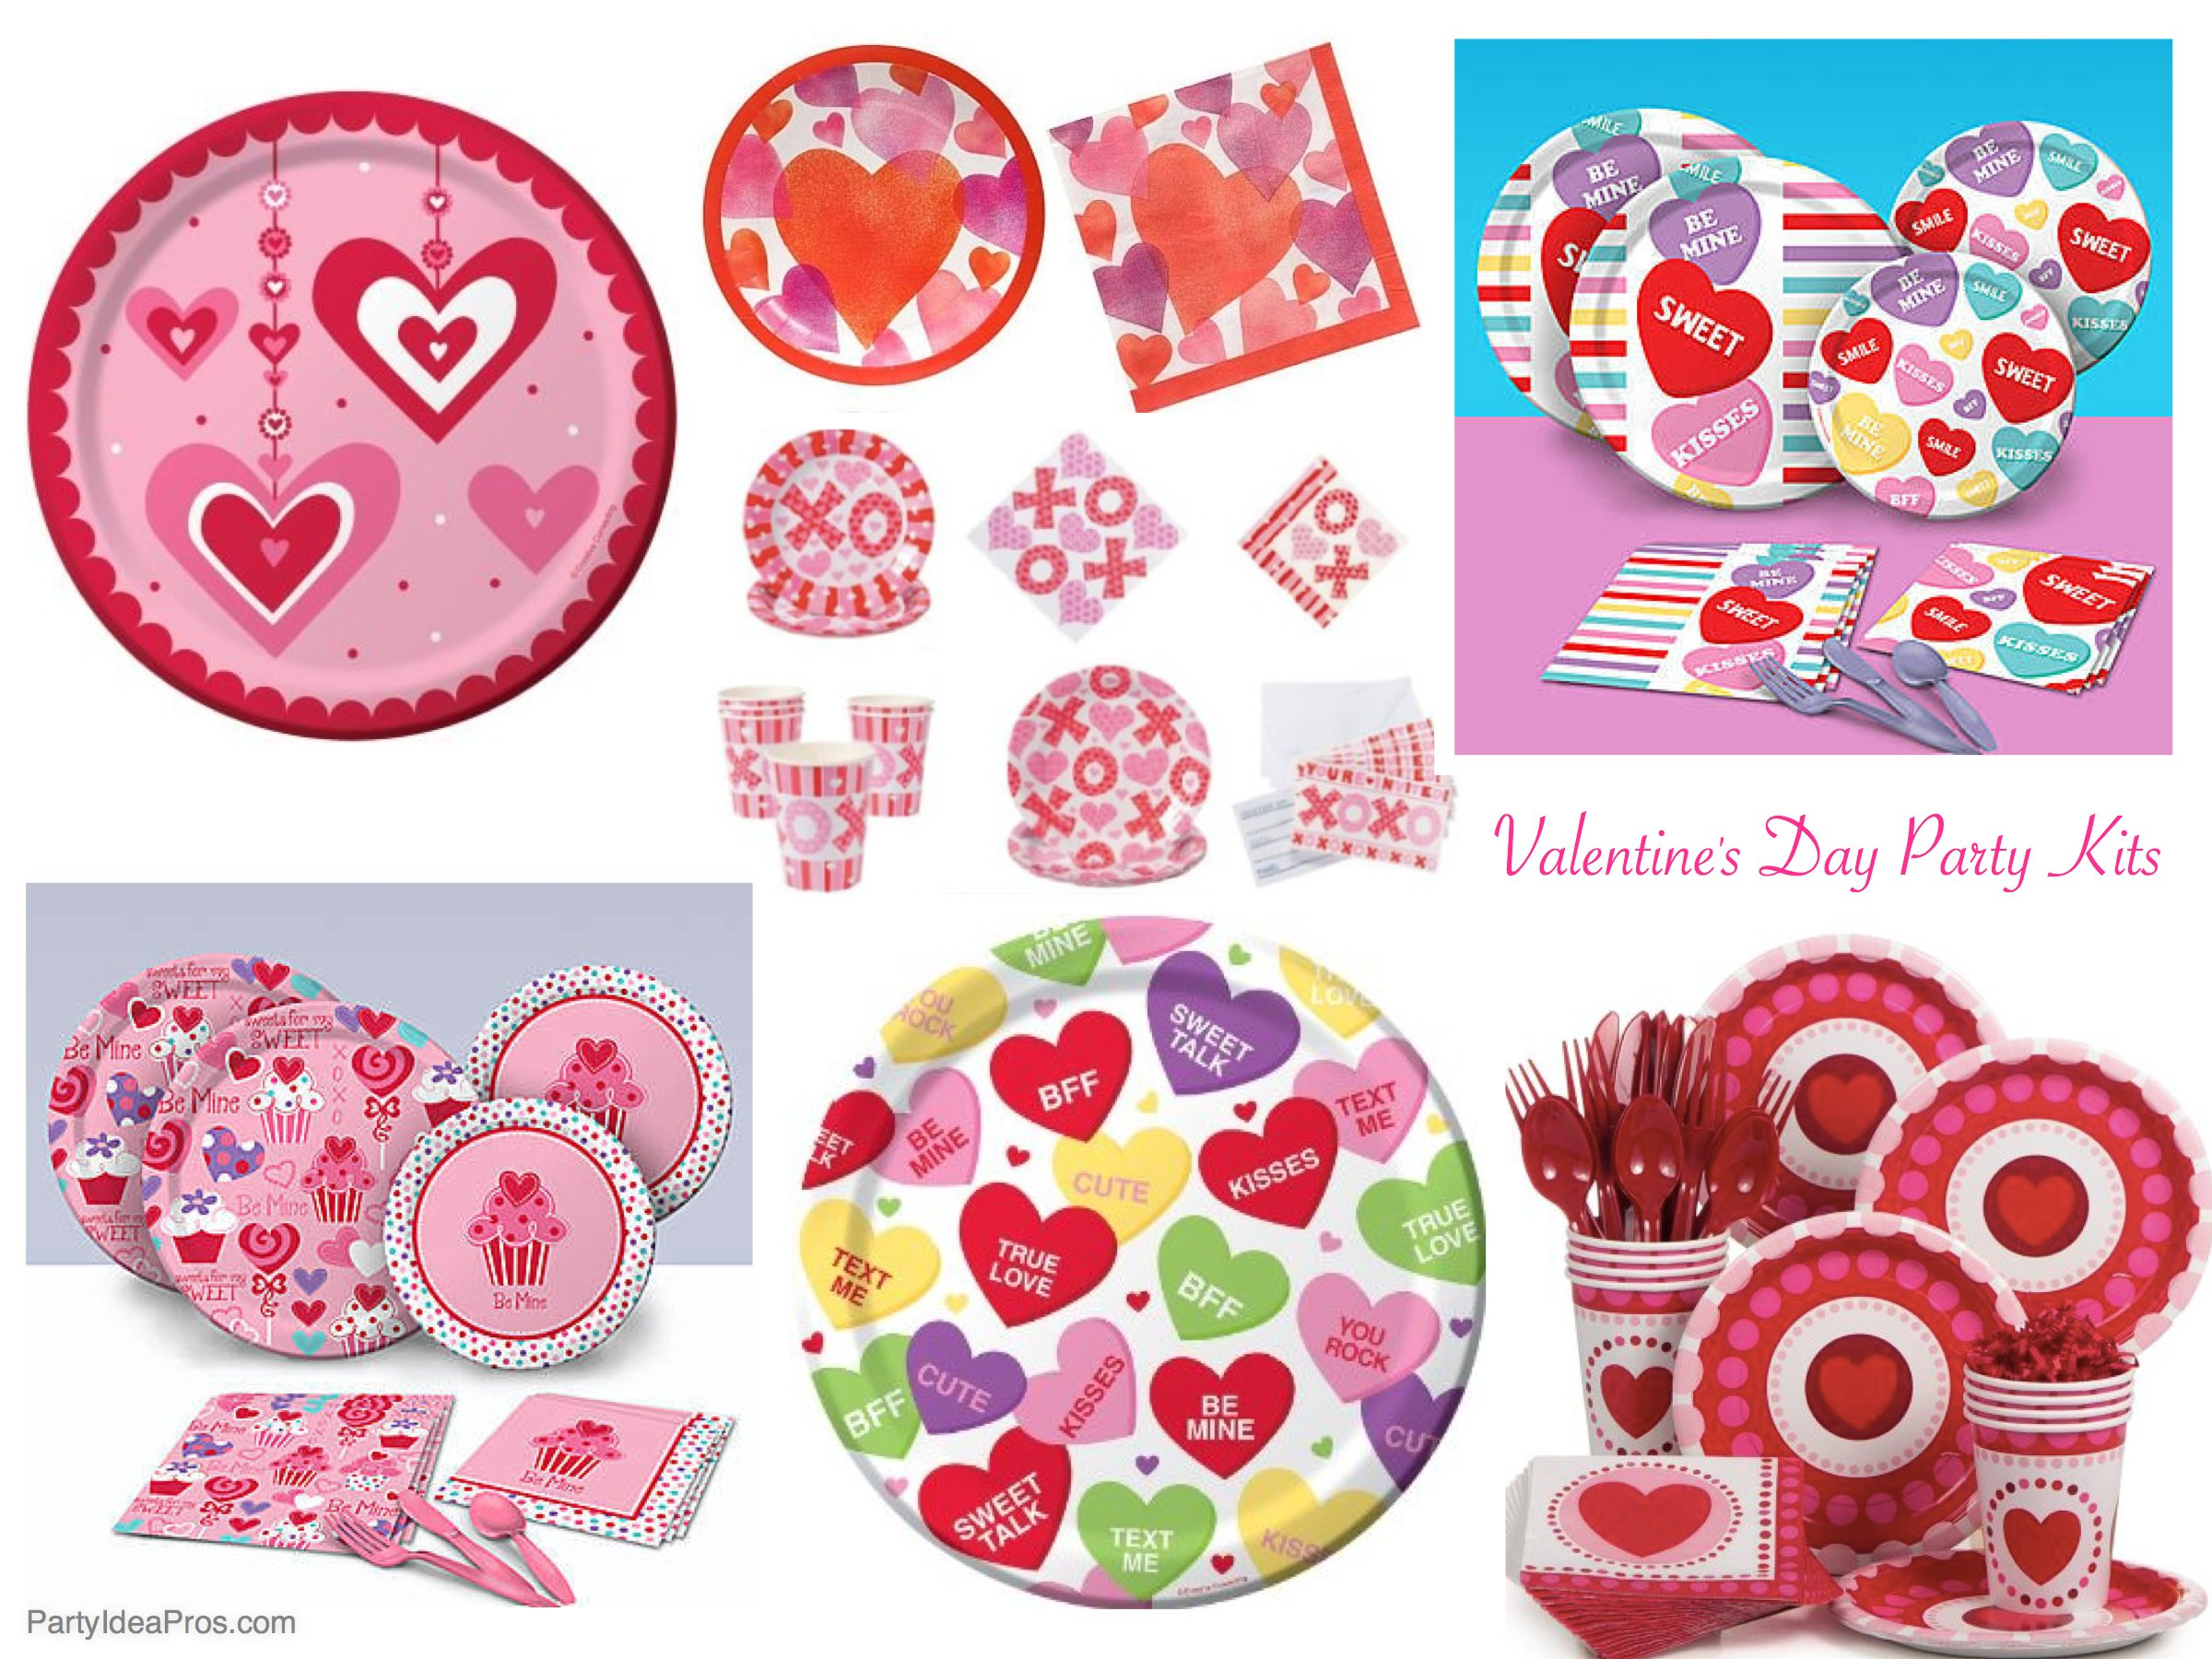 Best Valentines Day Party Kits